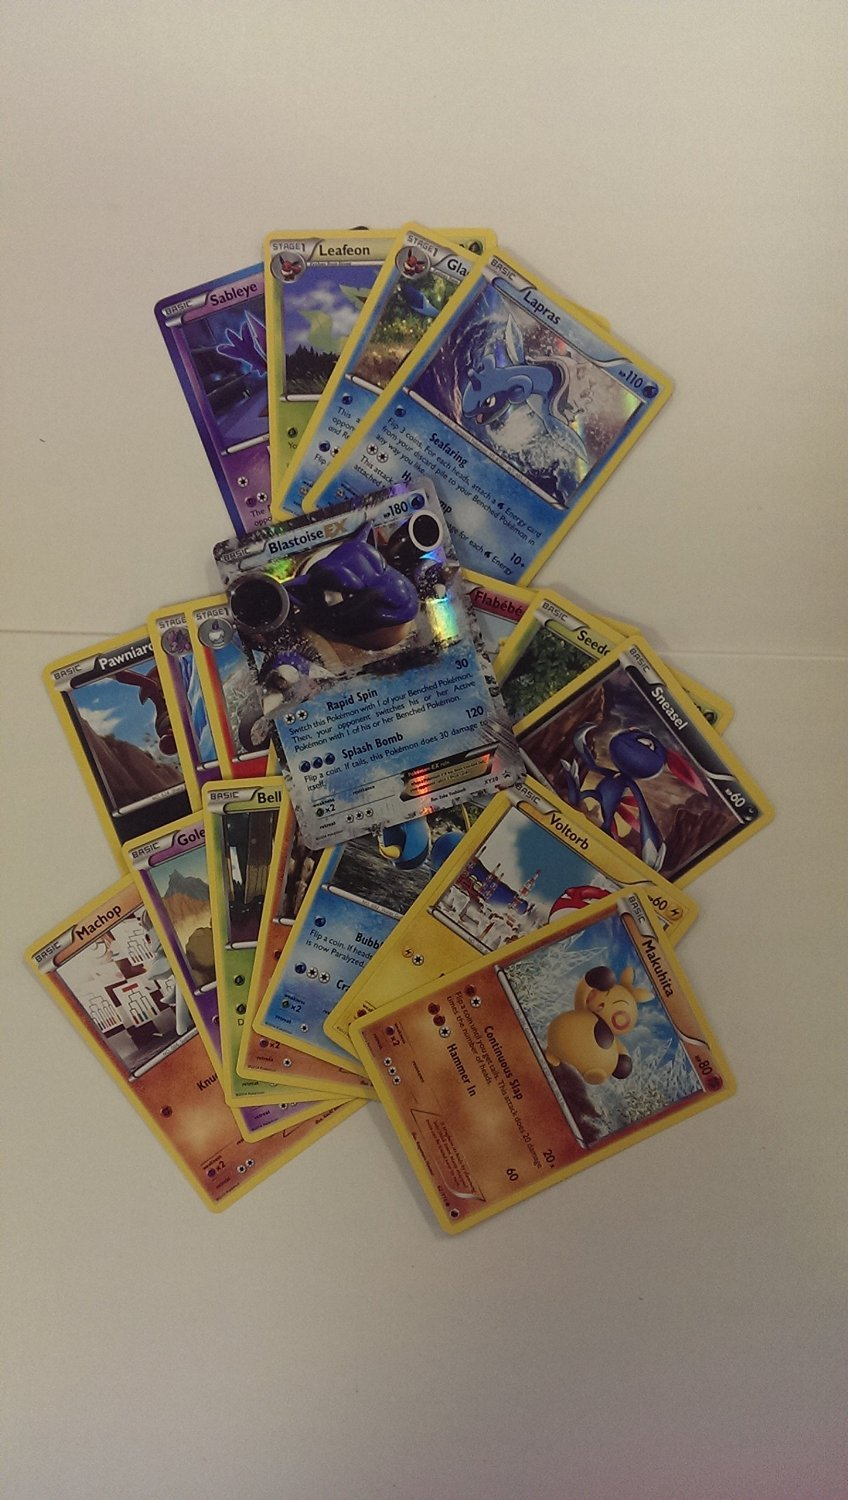 Lot of 20 Pokemon TCG Cards including 1 Ultra Rare, 4 Rares, and 15 Commons/Uncommons B00G05STHK